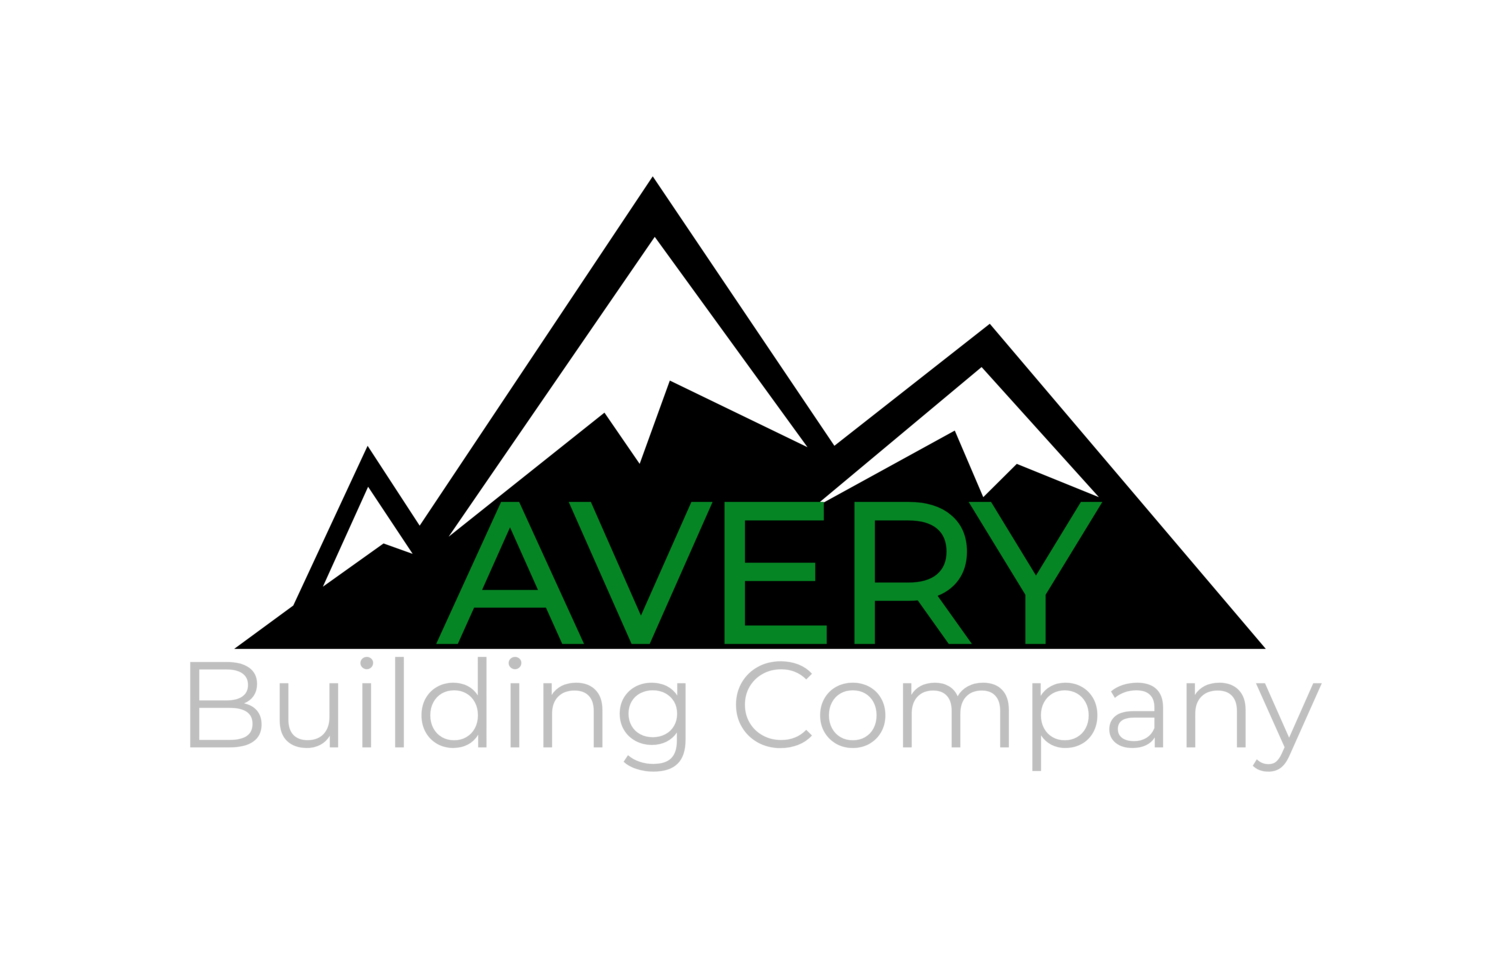 Avery Building Company